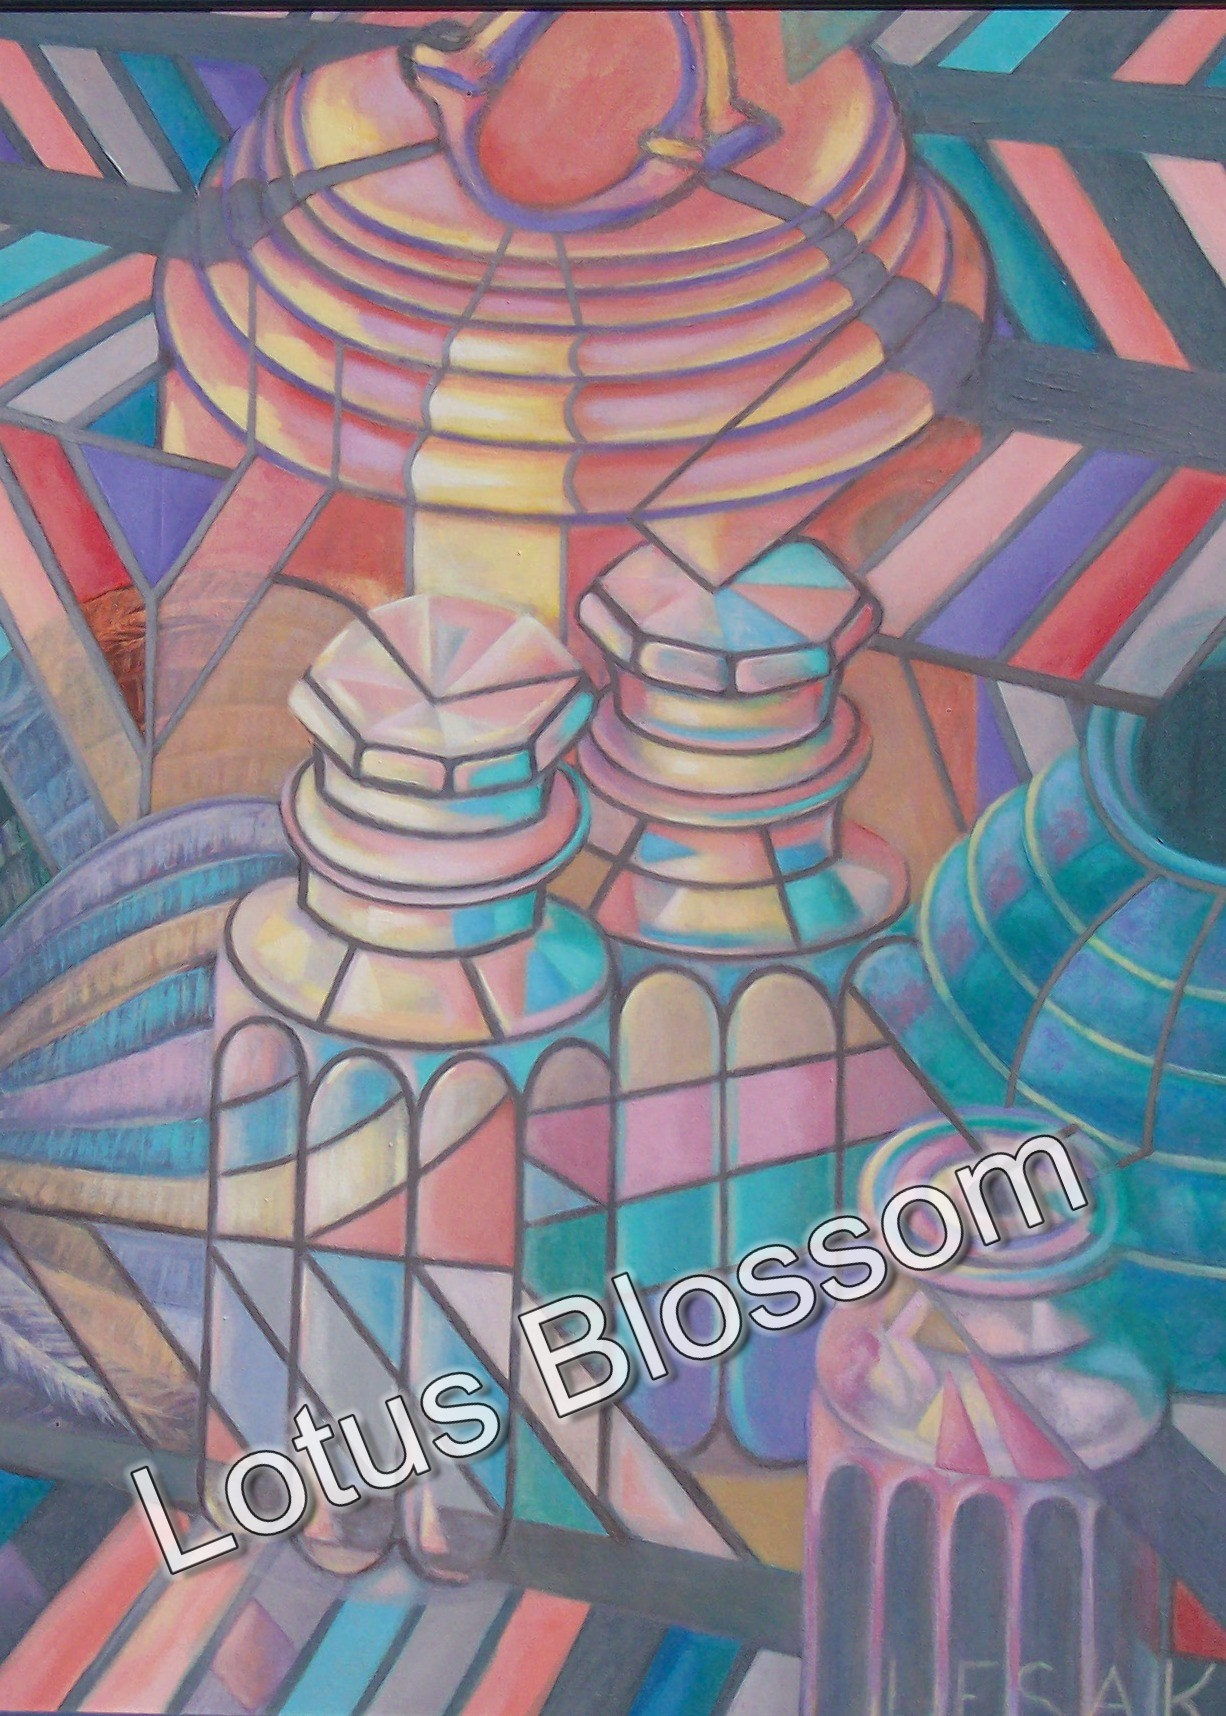 Facets of light and form by Lotus Blossom